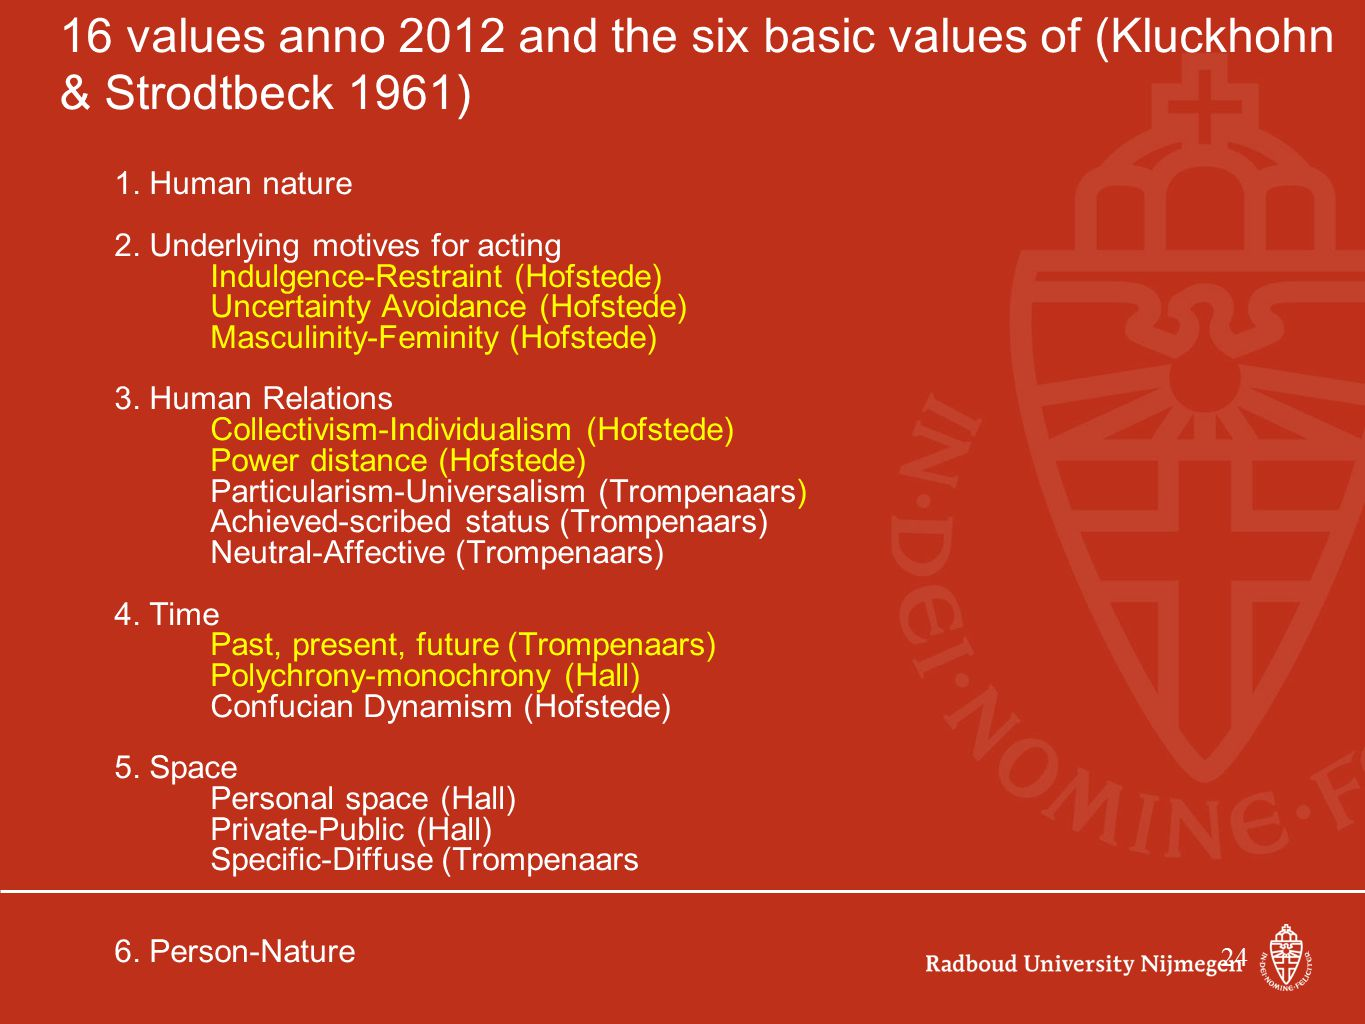 24 16 values anno 2012 and the six basic values of (Kluckhohn & Strodtbeck 1961) 1. Human nature 2. Underlying motives for acting Indulgence-Restraint